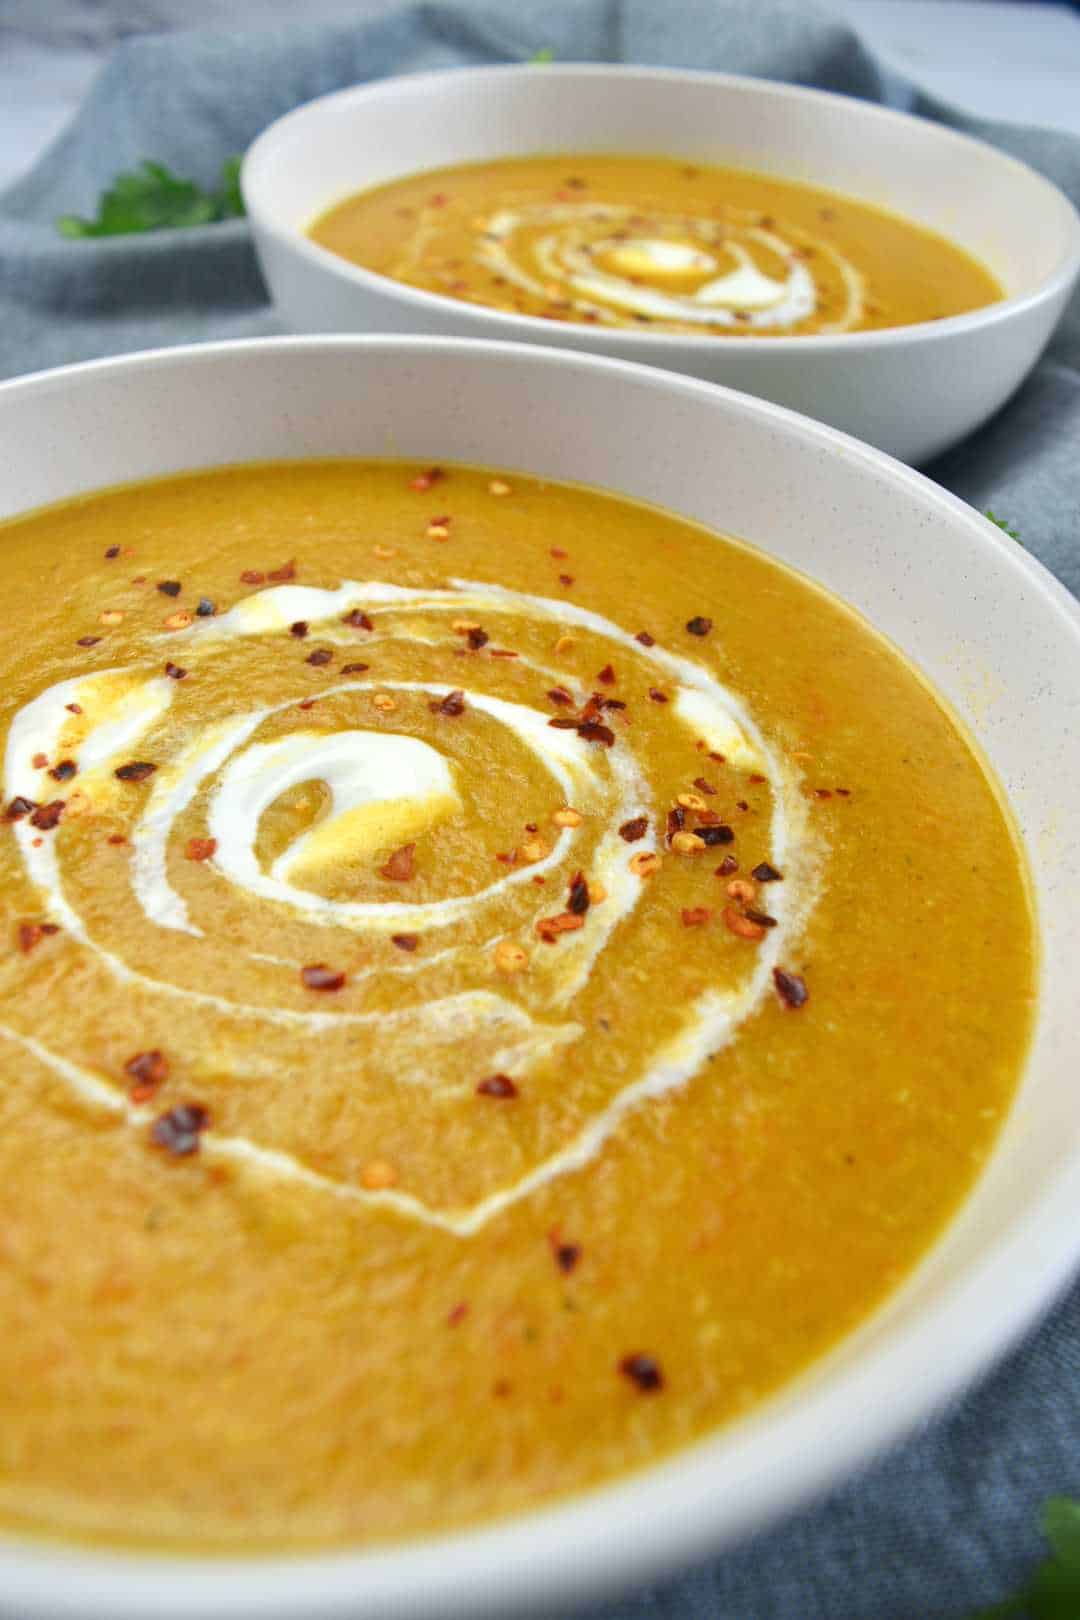 Red lentil soup in white bowls with chili flakes on top.